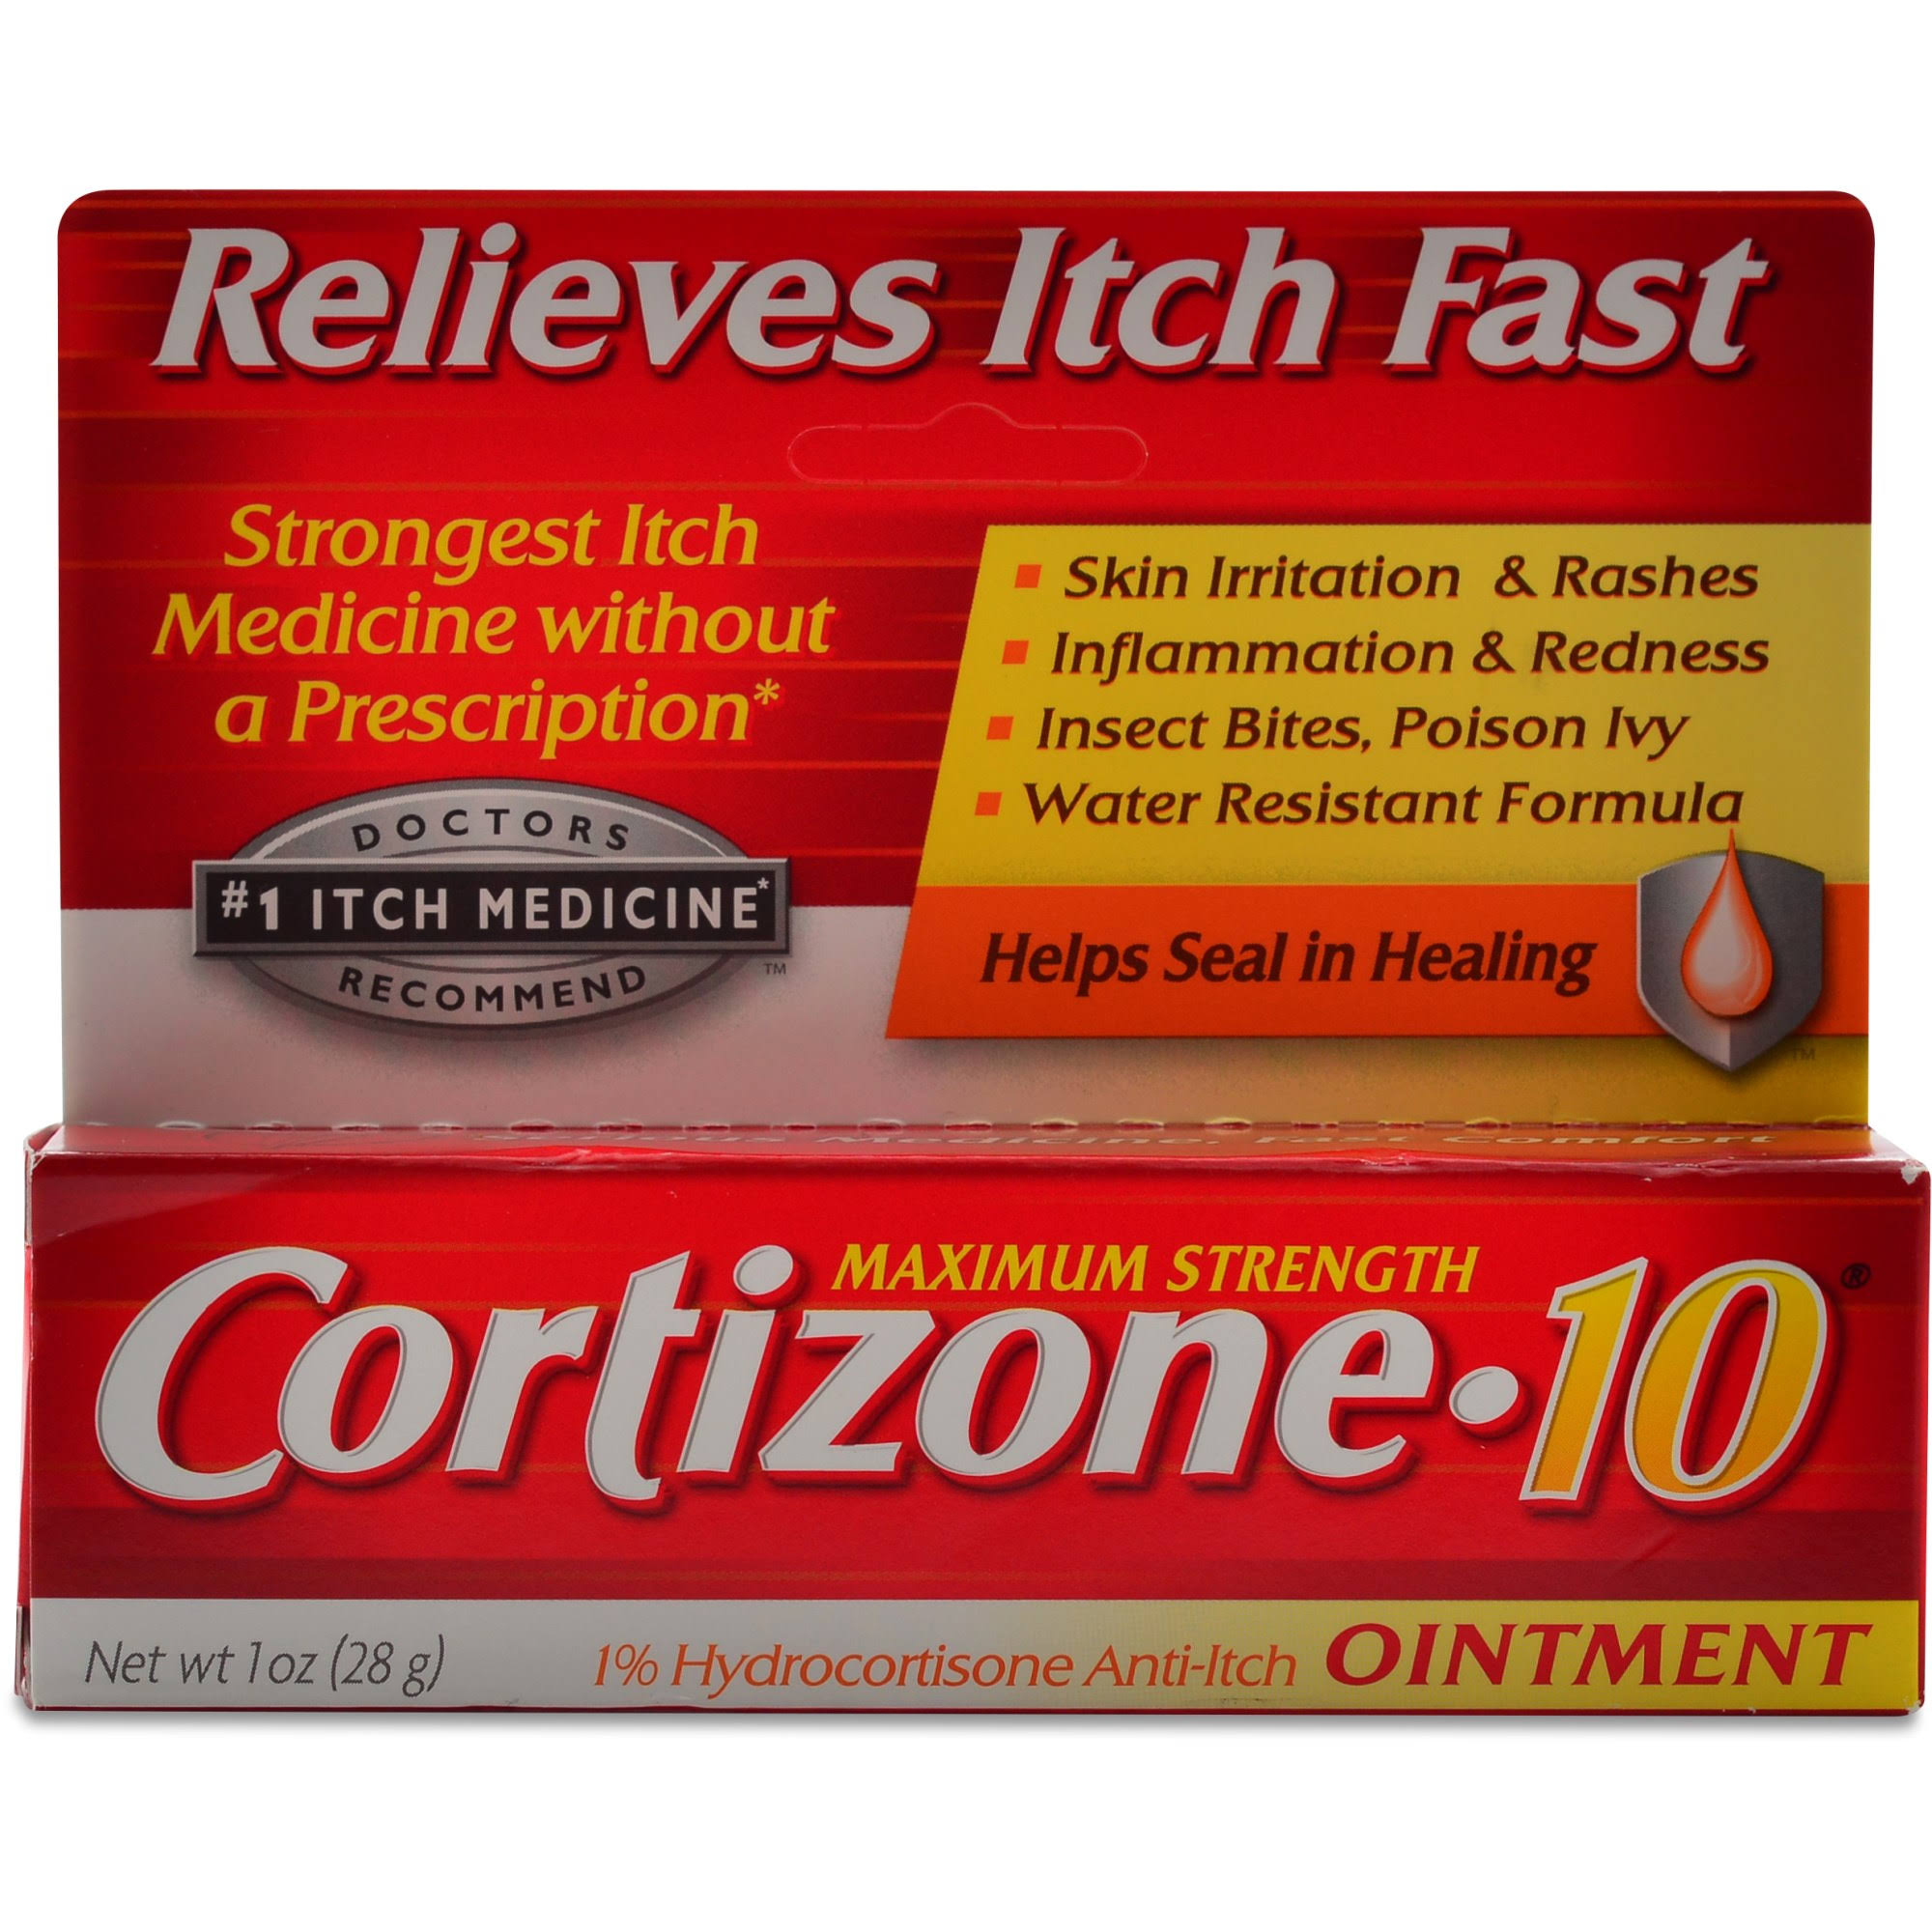 Cortizone-10 Maximum Strength Anti-Itch Ointment - 1oz